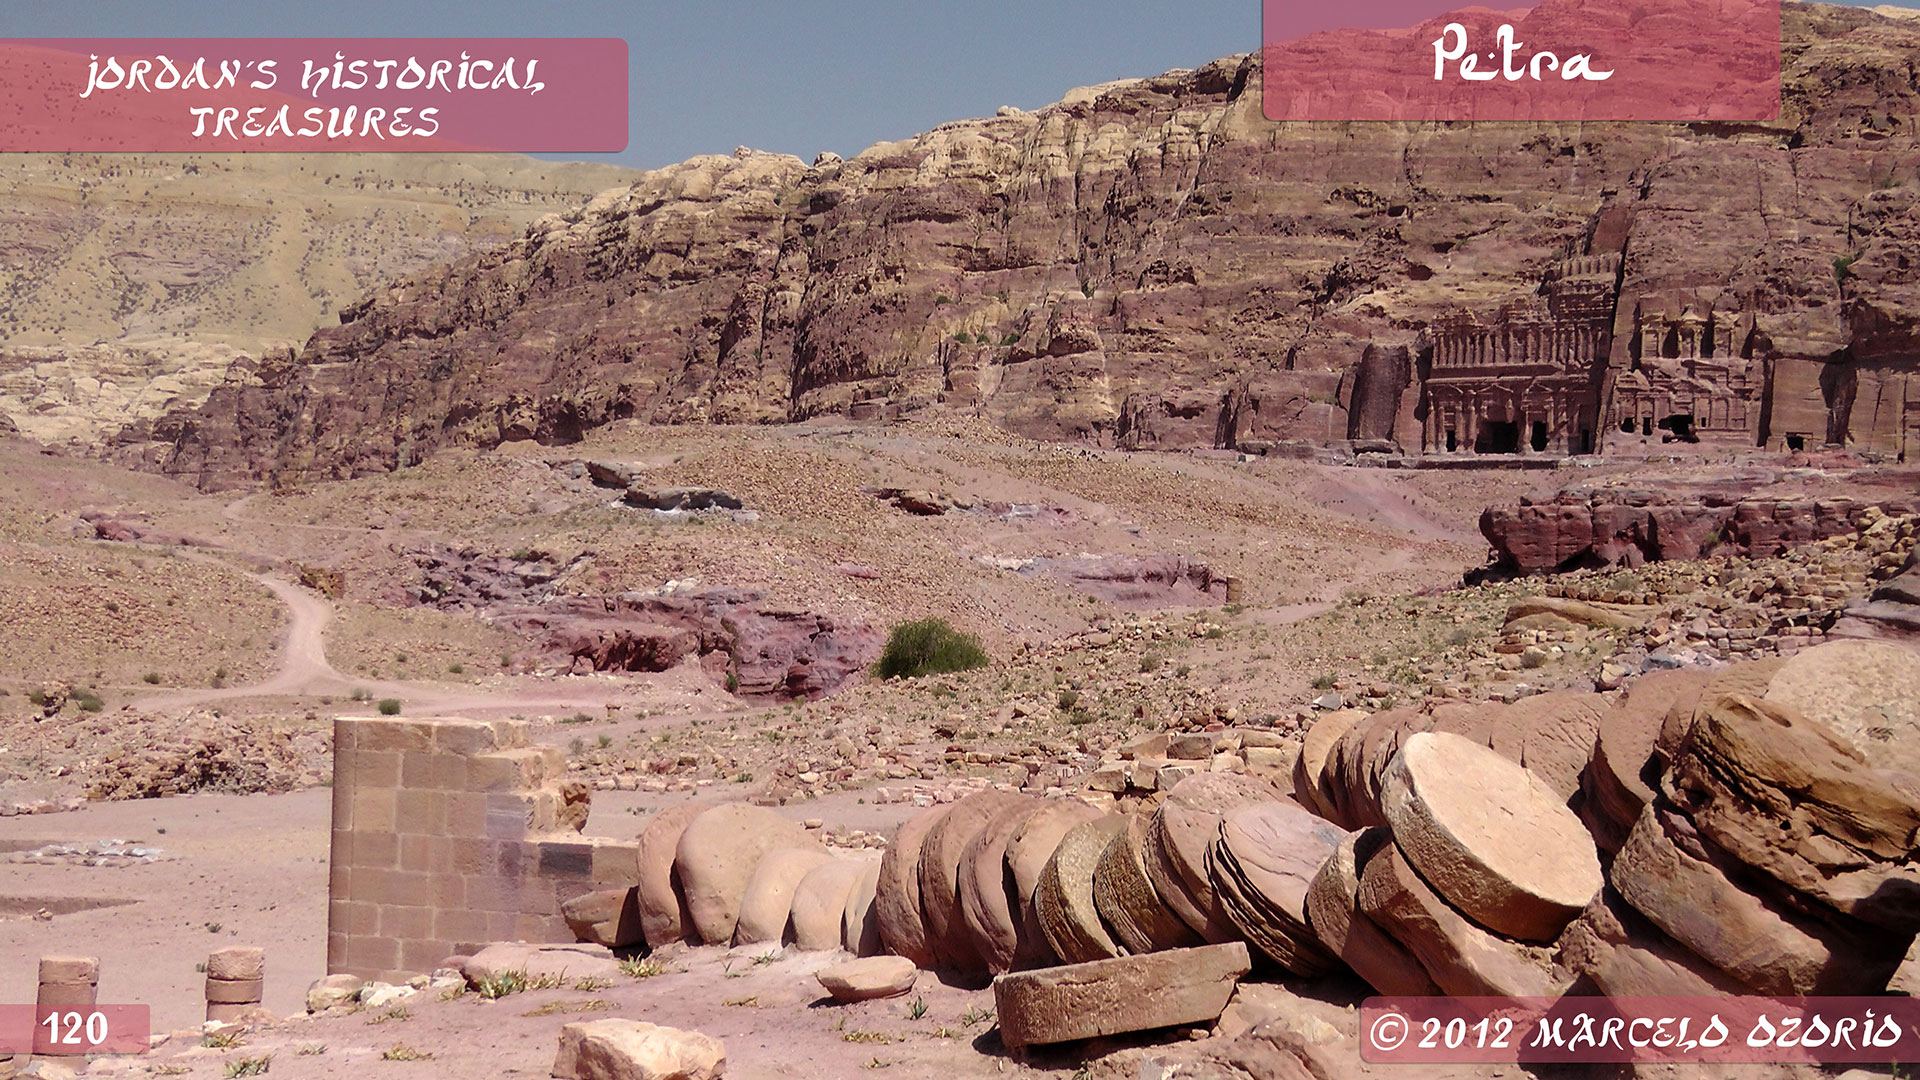 Petra Archaeological City Jordan 40 - The Astonishing Treasure at Petra - Jordan